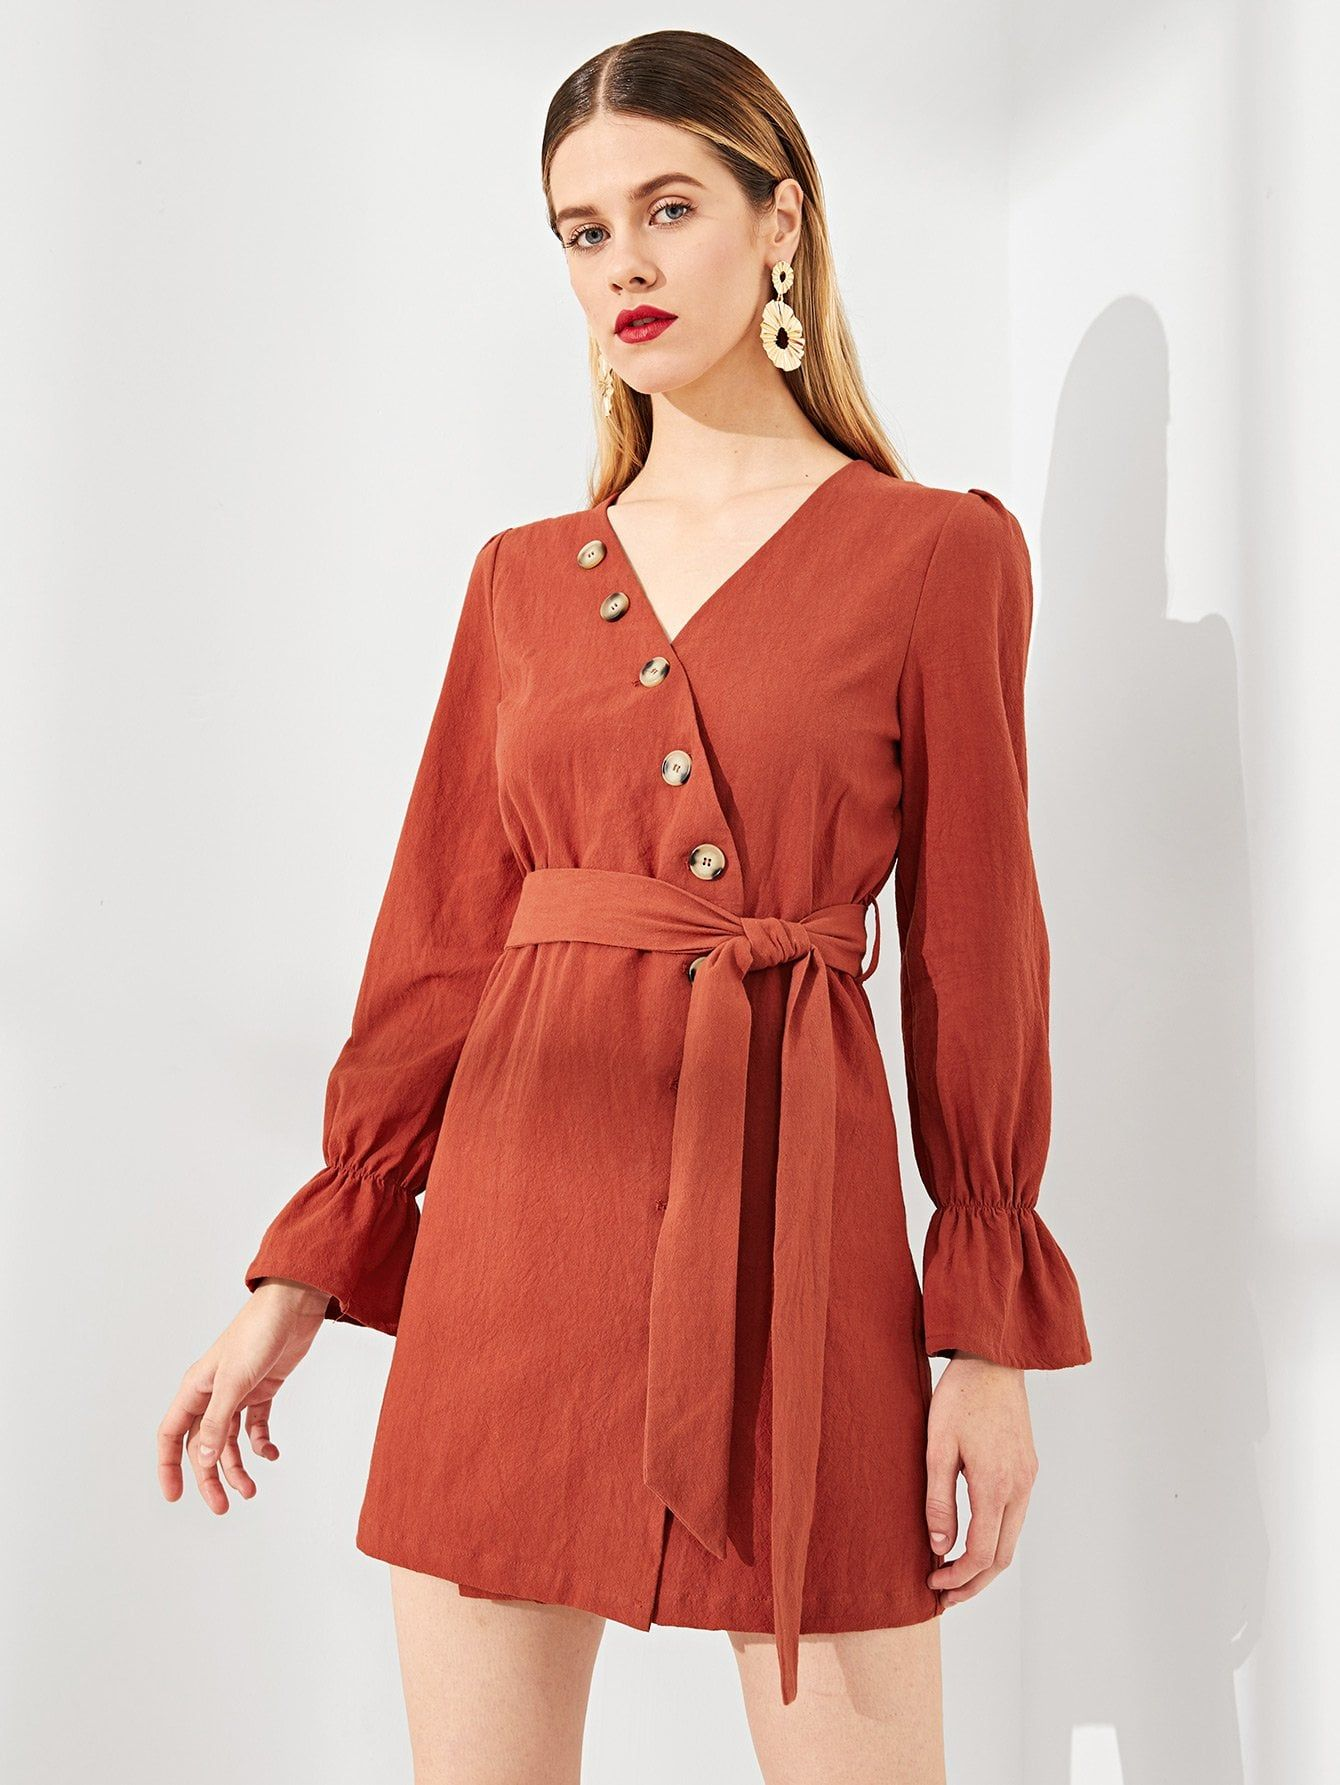 6677becdb1 Casual Wrap and Button Plain Shift V Neck Long Sleeve Natural Rust Short  Length Button Up Wrap Bell Sleeve Solid Dress